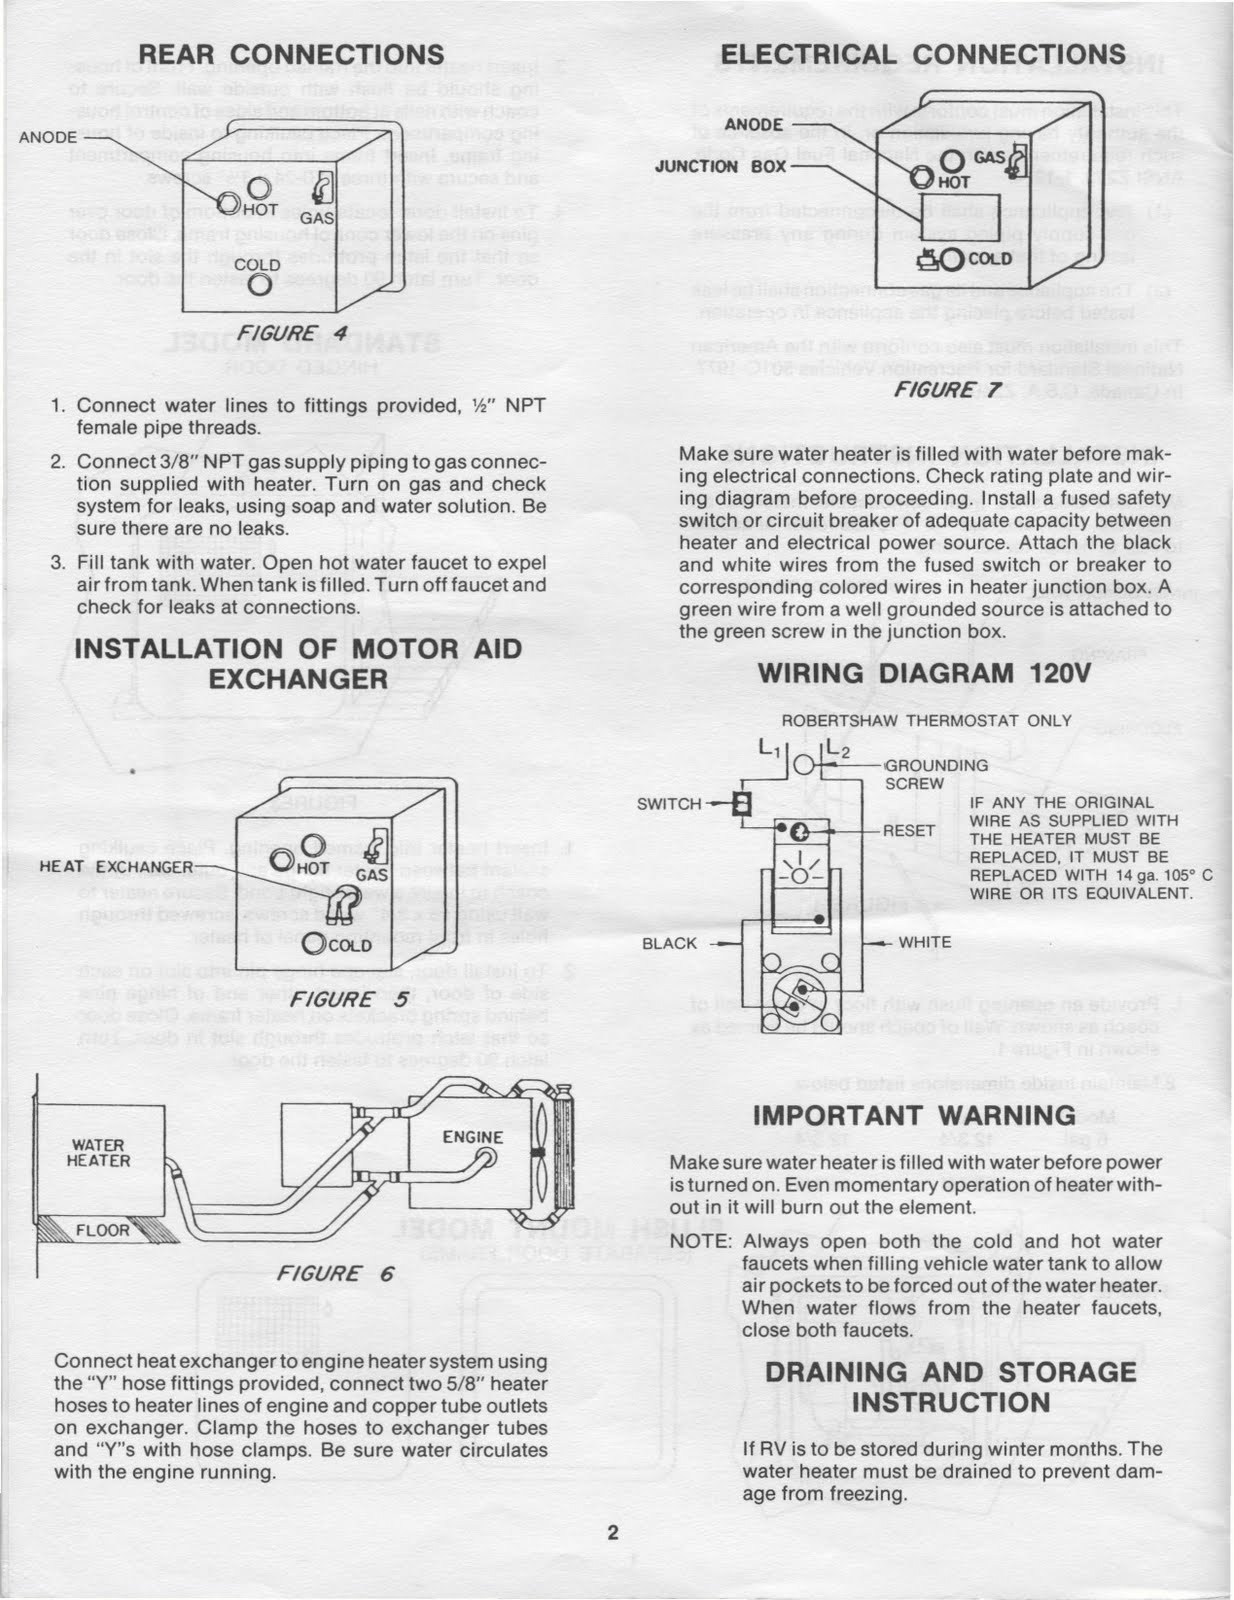 WRG-9159] Fleetwood Wiring Diagrams on ford aod wiring-diagram, ford econoline wiring diagram, mach 460 sound system diagram, 6.0 powerstroke wiring diagram, ford 460 distributor wiring, ford 460 radiator, ford distributor diagram, ford aerostar wiring diagram, ford 460 switch, ford 460 thermostat replacement, ford 460 cooling system, chevy small block wiring diagram, ford mustang wiring diagram, ford 460 clutch, ford 460 spark plug gap, ford f150 wiring diagram, ford 302 wiring diagram, ford v10 wiring diagram, ford truck wiring diagram, 1979 ford f-150 wiring diagram,